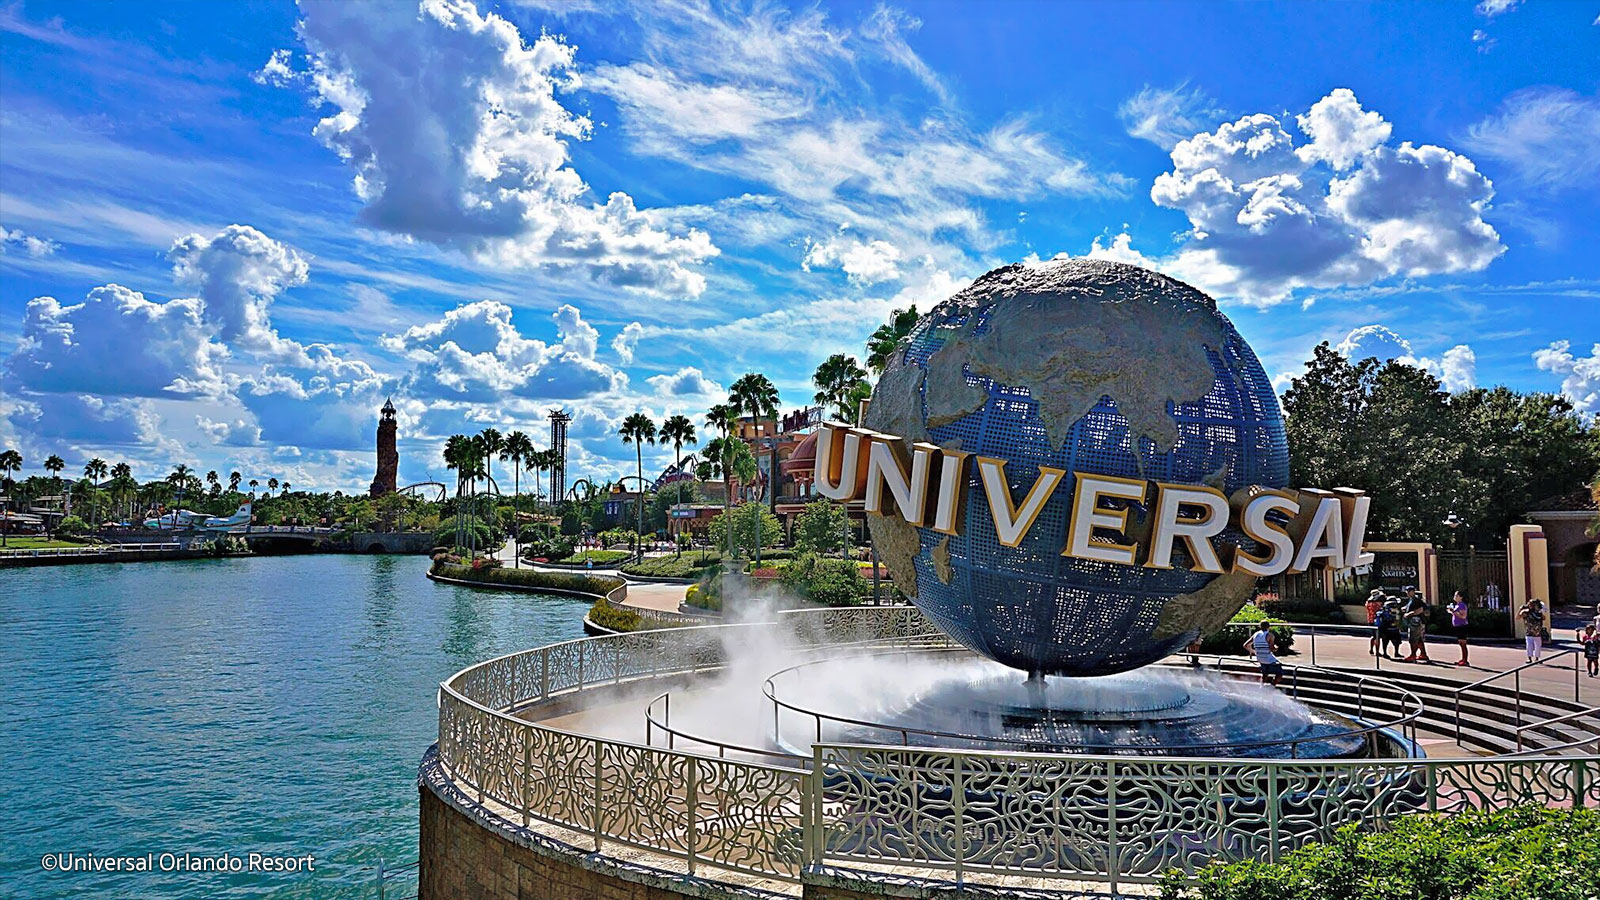 Universal Orlando's Planned Safety Protocols For Reopening Post-COVID-19